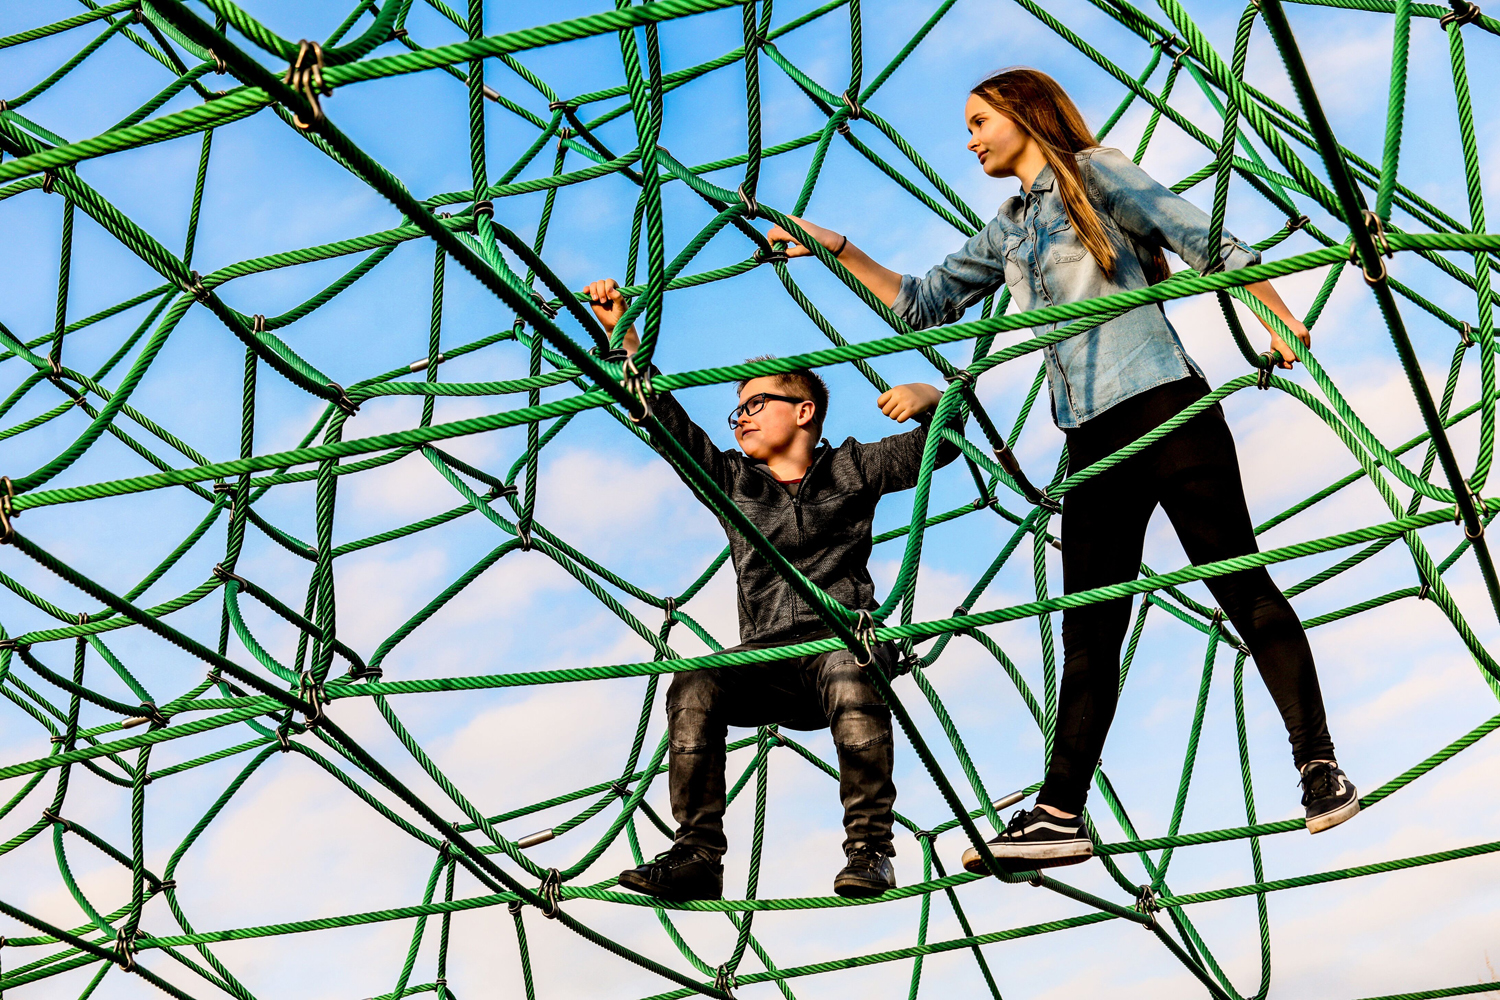 Illustration of two children climbing on the spiders web at Telford Town Park